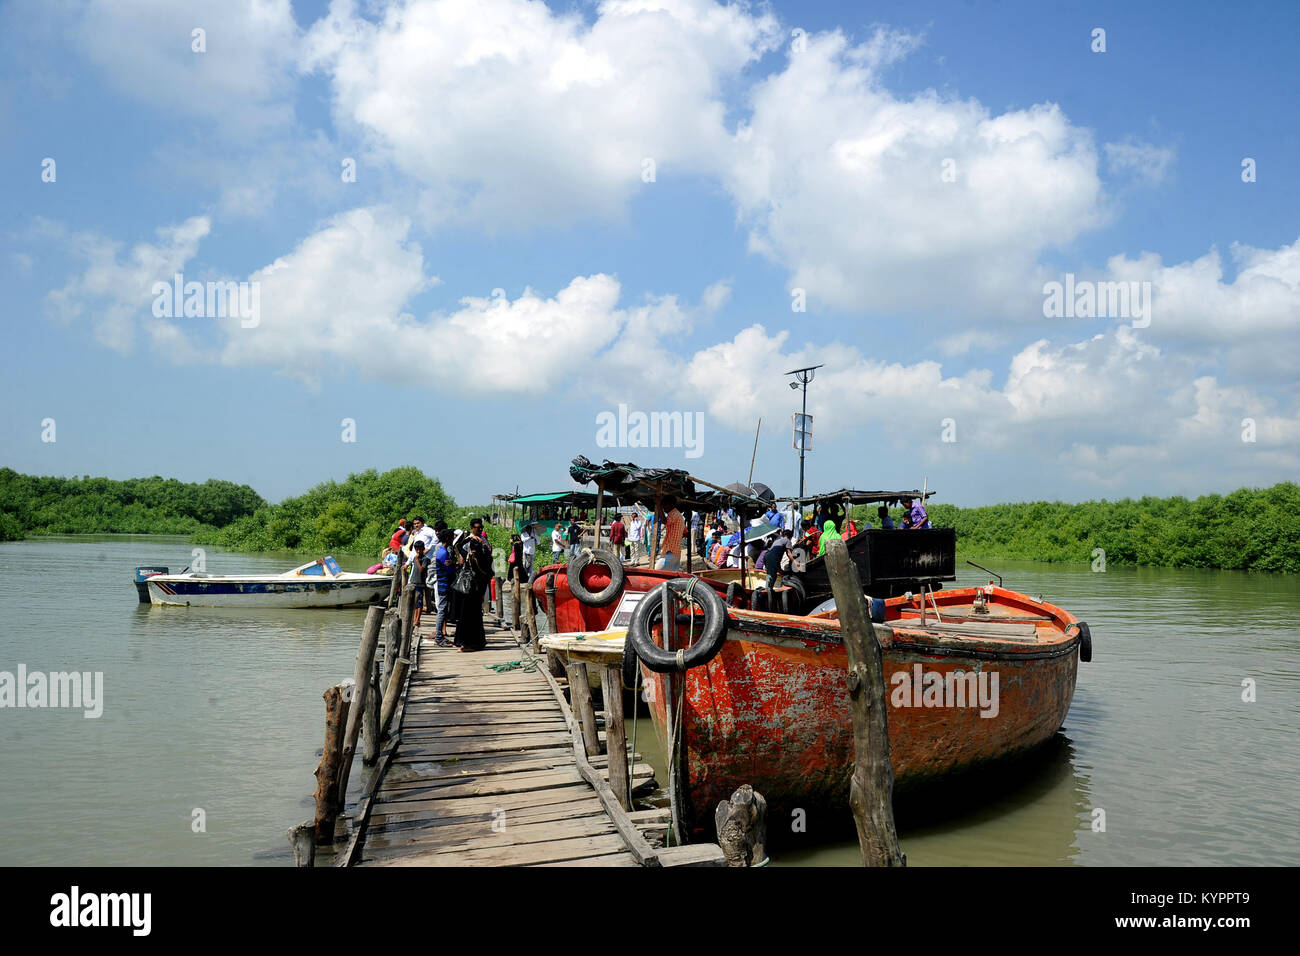 Visitors at Moheshkhali Iland in Cox's Bazar, Bangladesh Stock Photo